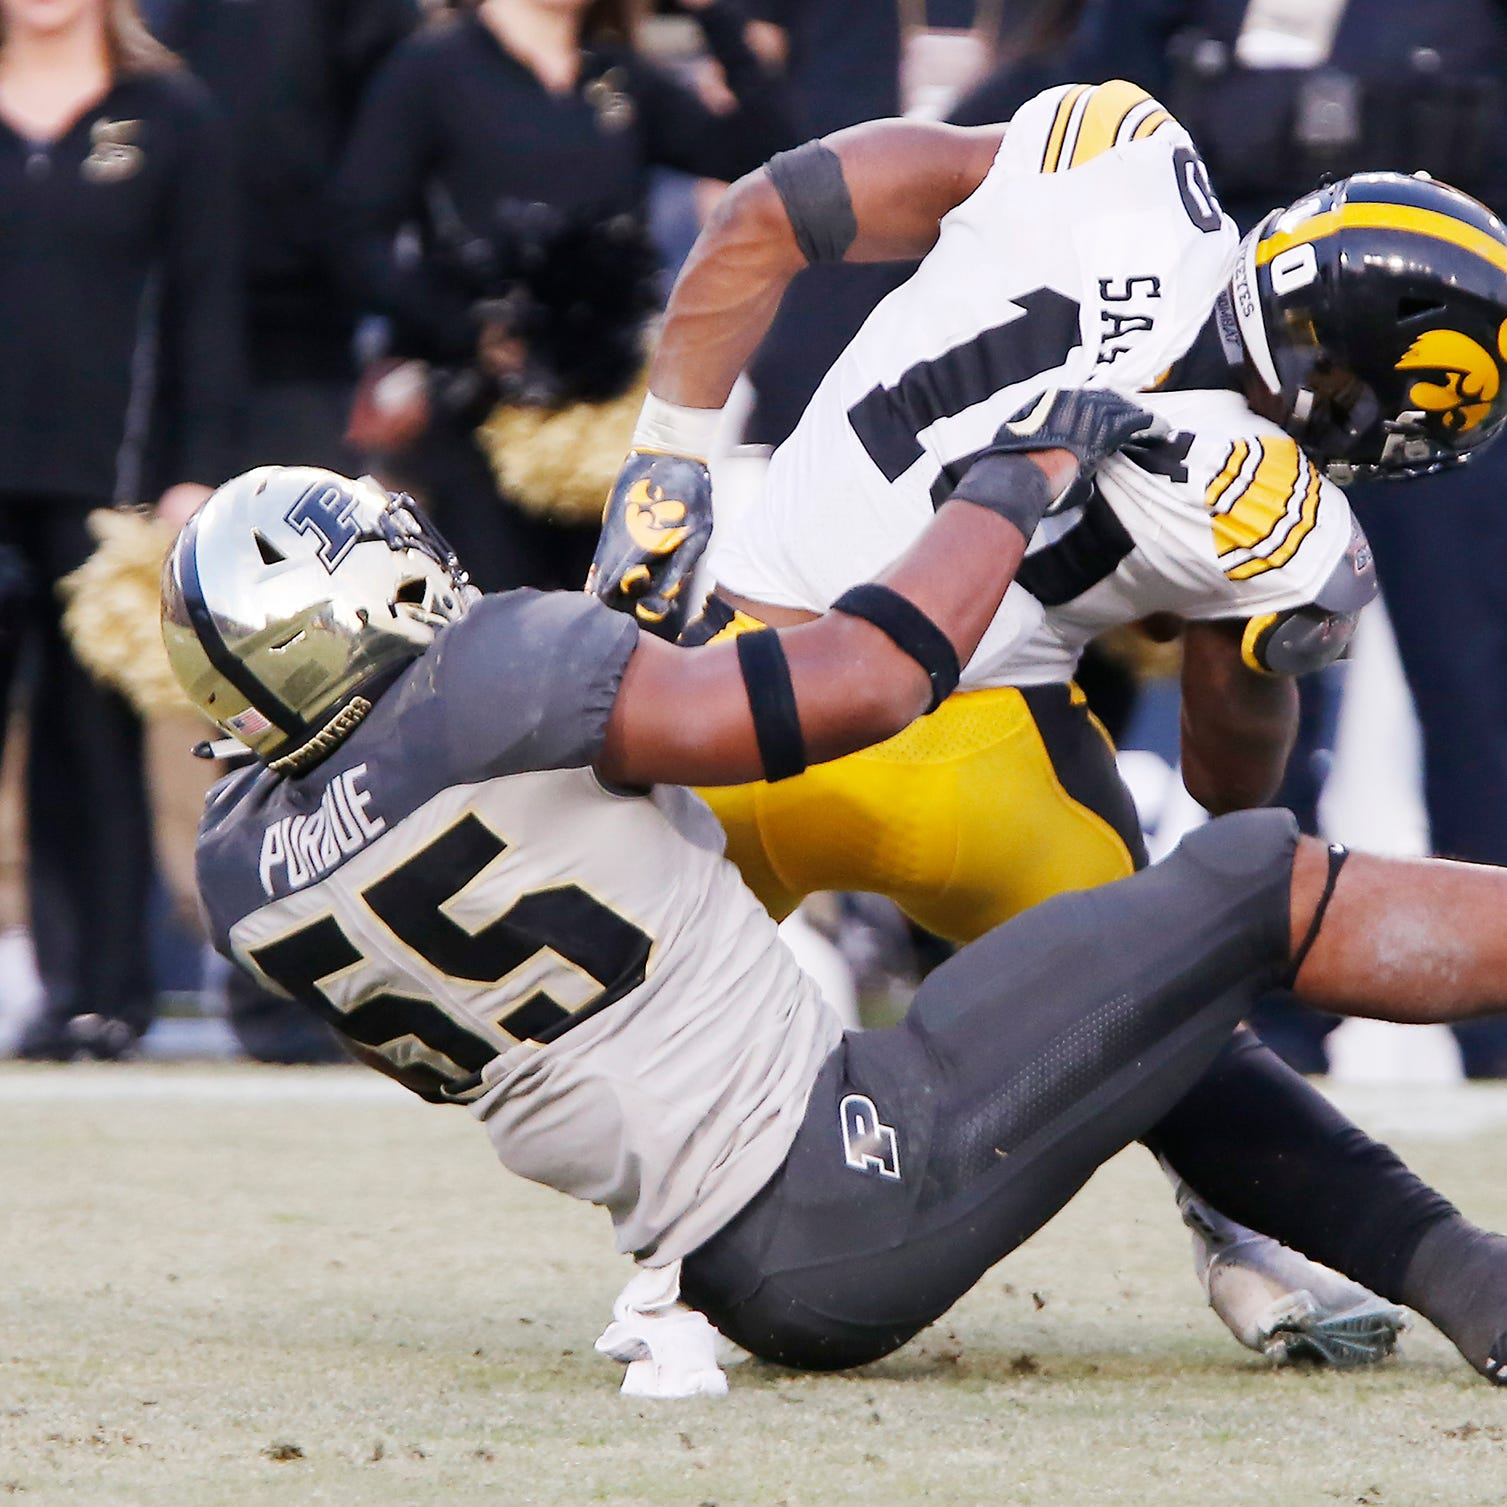 Purdue linebacker Derrick Barnes moving to pass rushing spot for bowl game